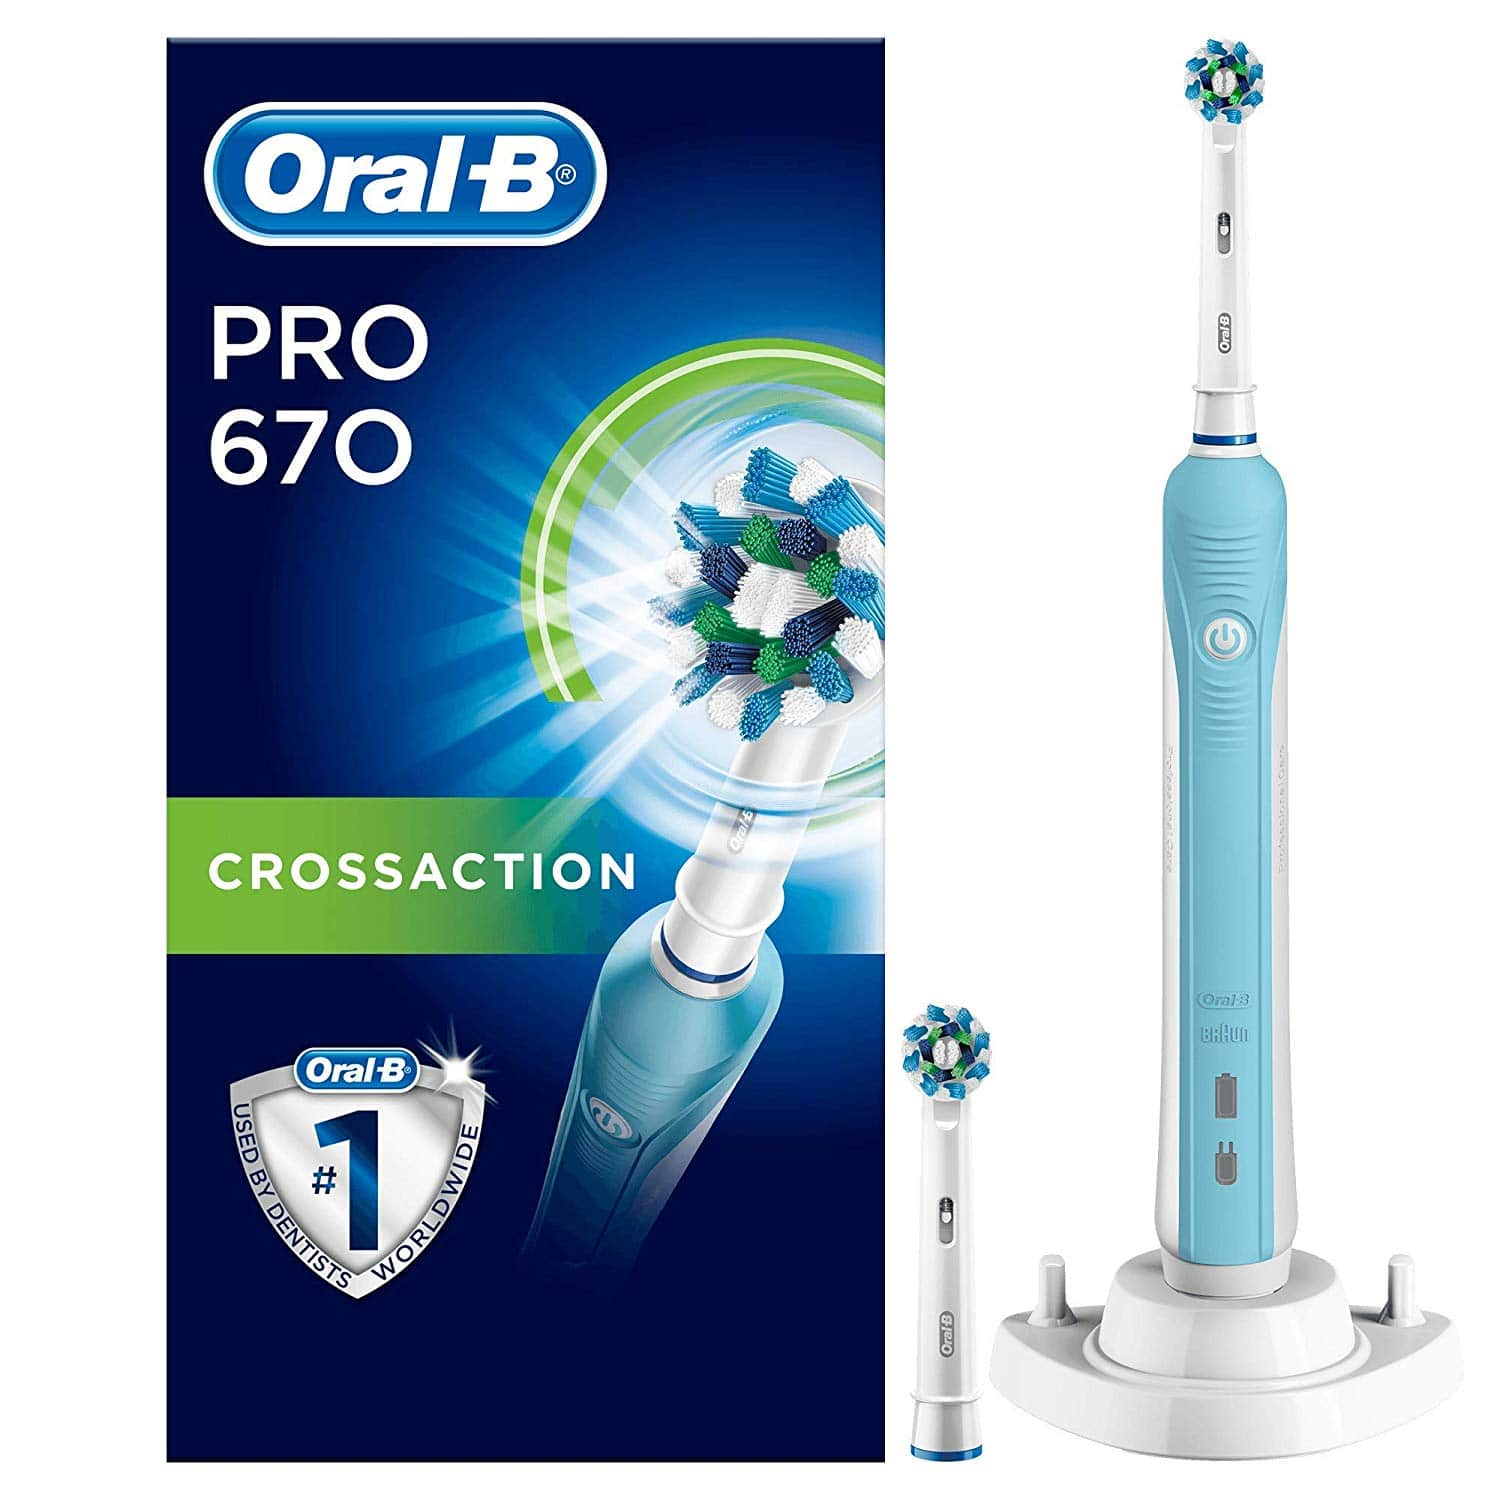 Oral b pro 670 powered by braun